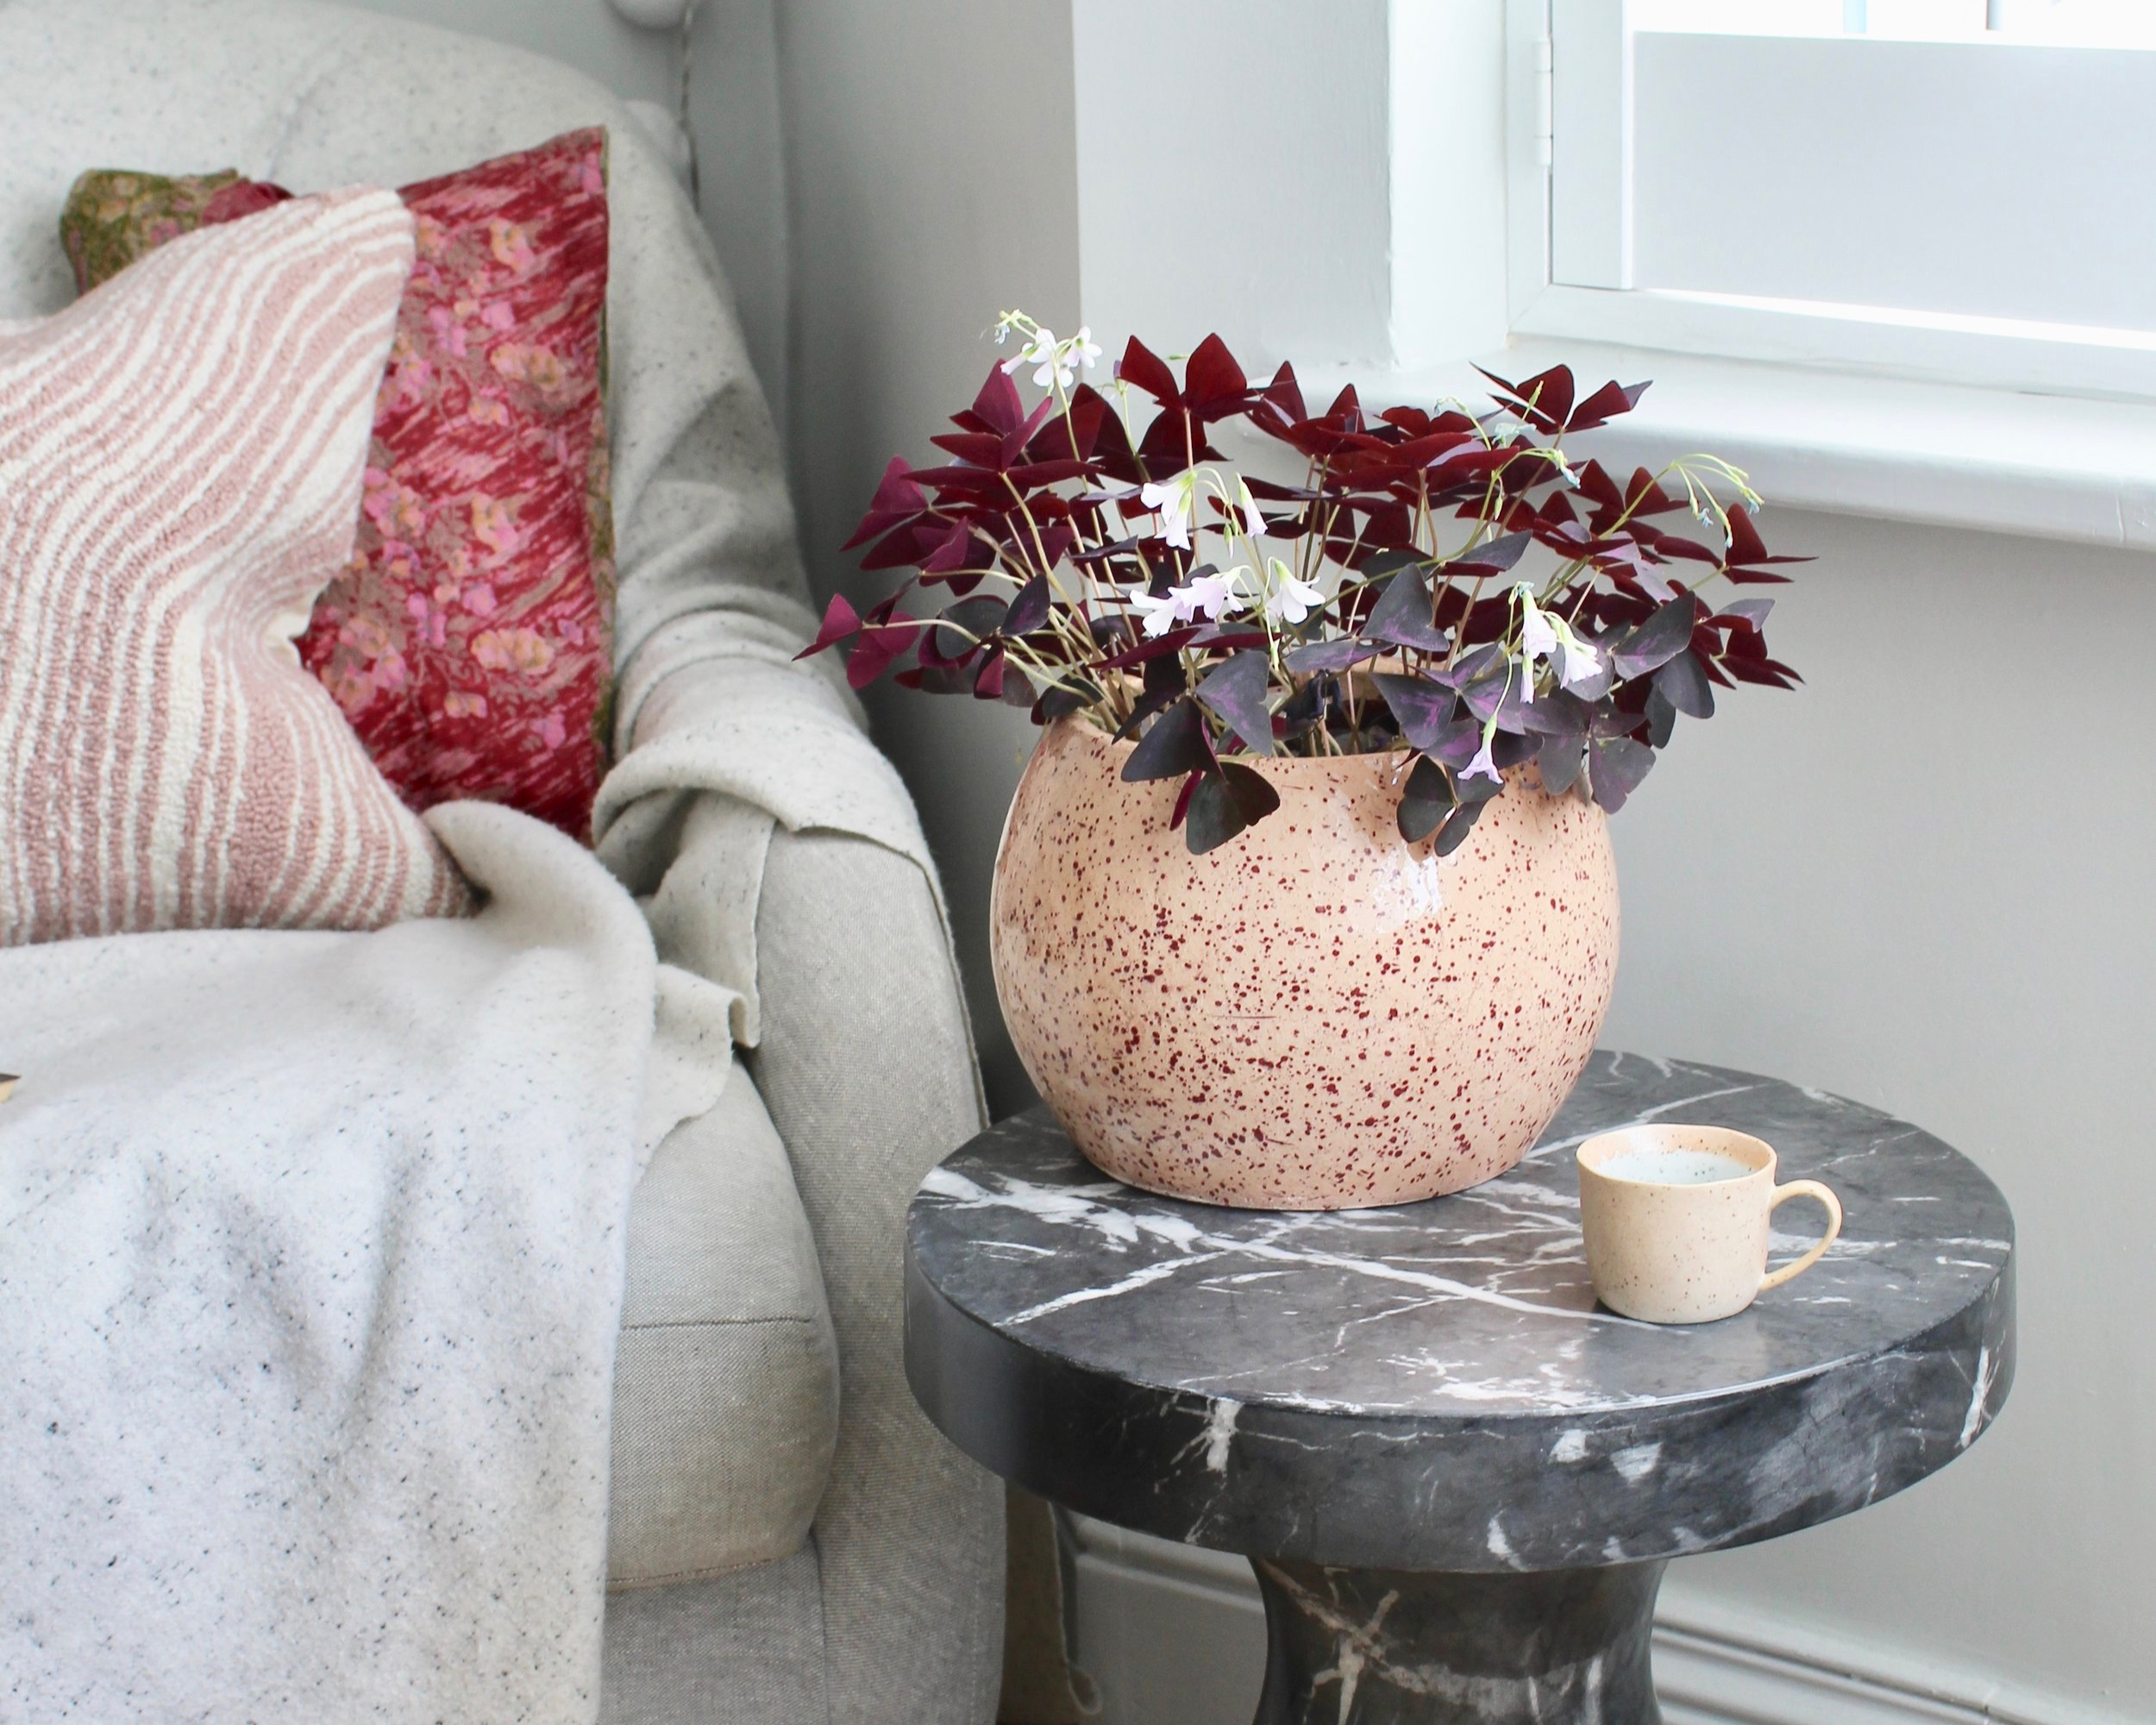 This Oxalis plant inspired the this scheme of dark burgundy and pink - those delicate lilac flowers are just dreamy!